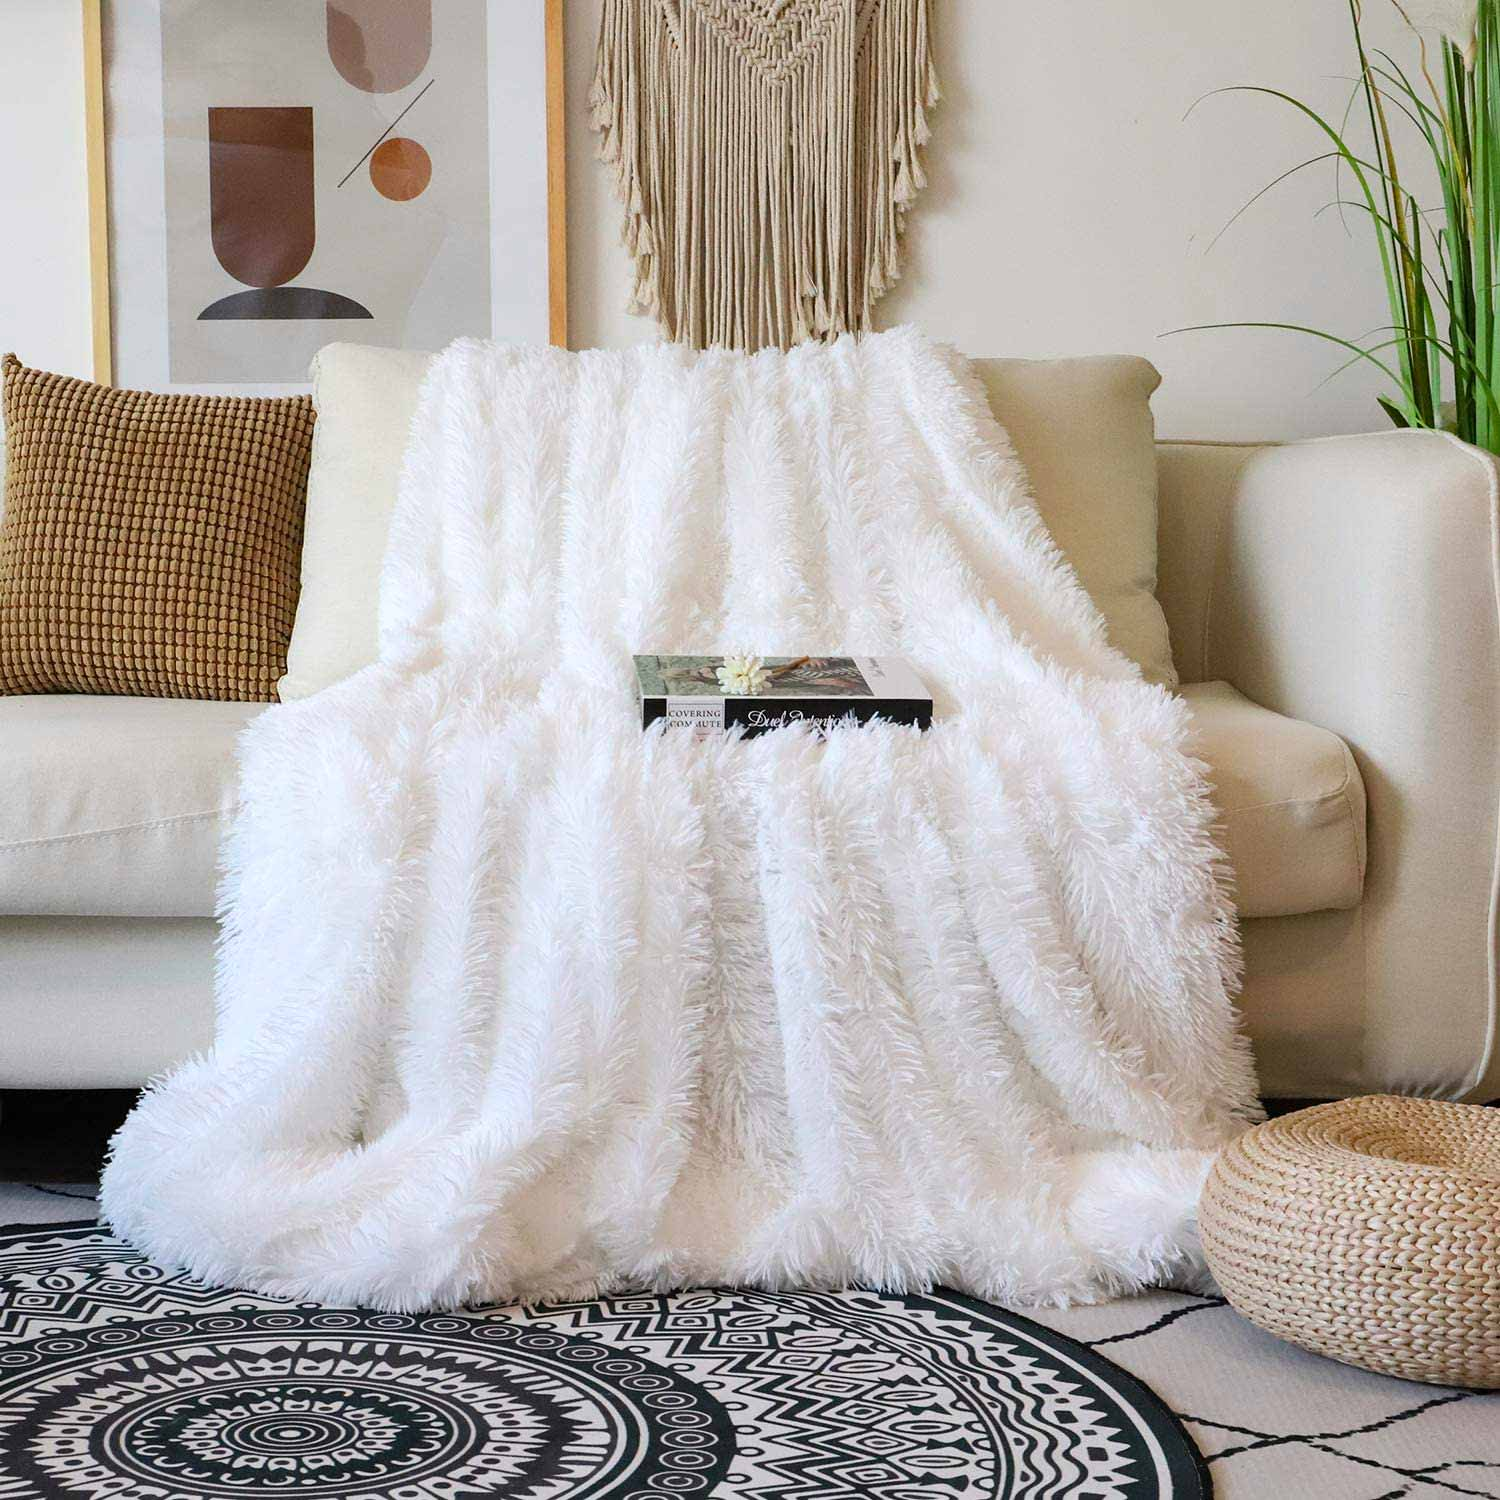 Decorative Extra Soft Faux Fur Blanket Queen Size 78